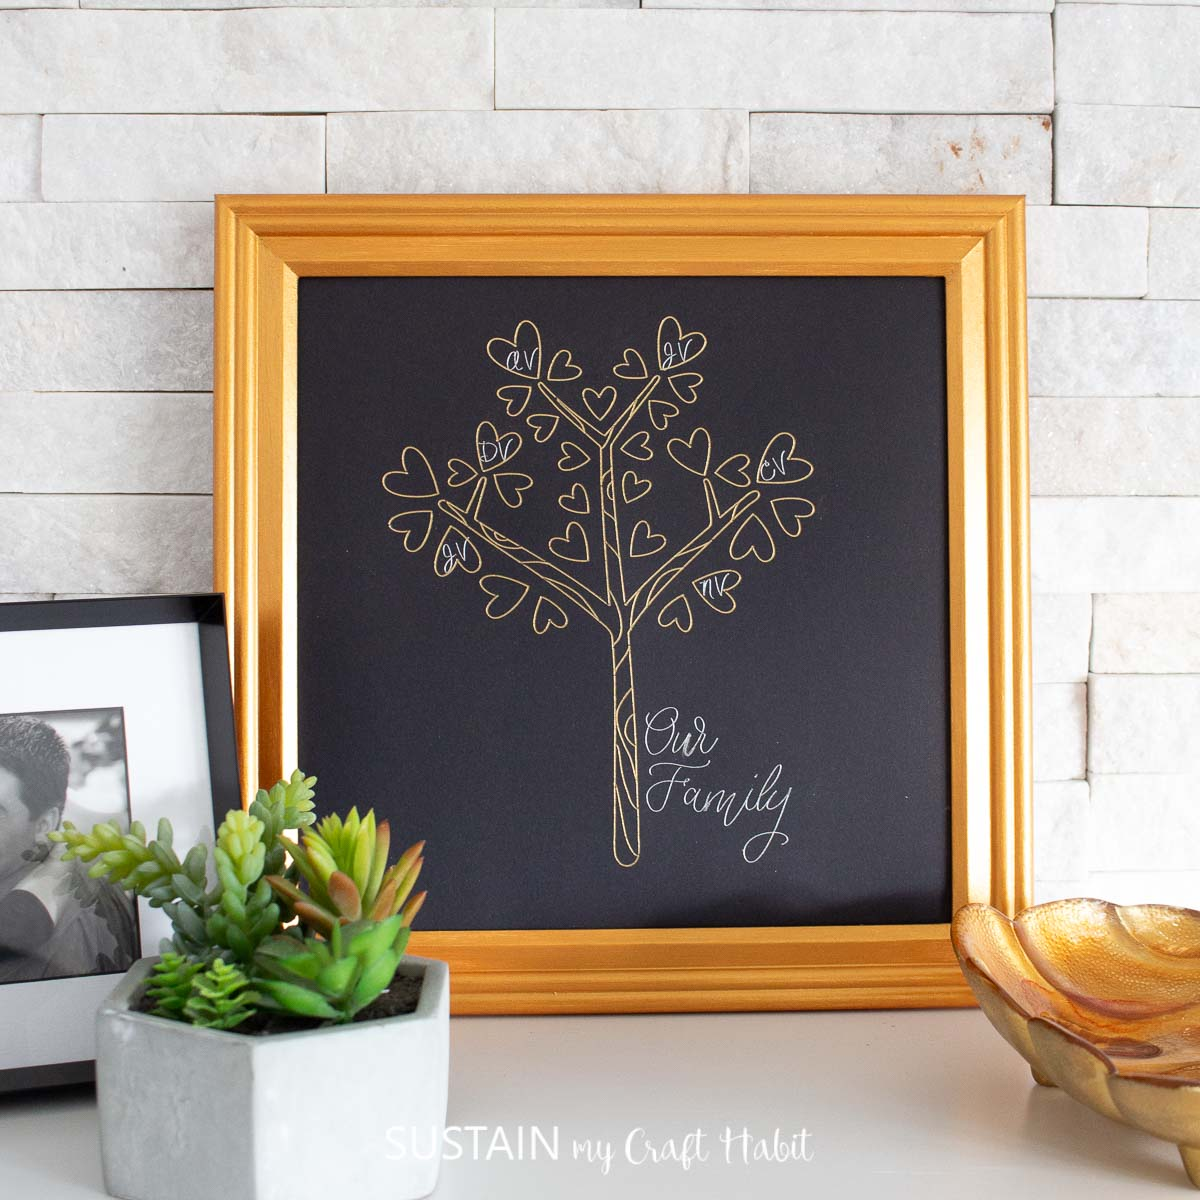 Framed family tree craft resting on a white surface, leaning against a white brick background.